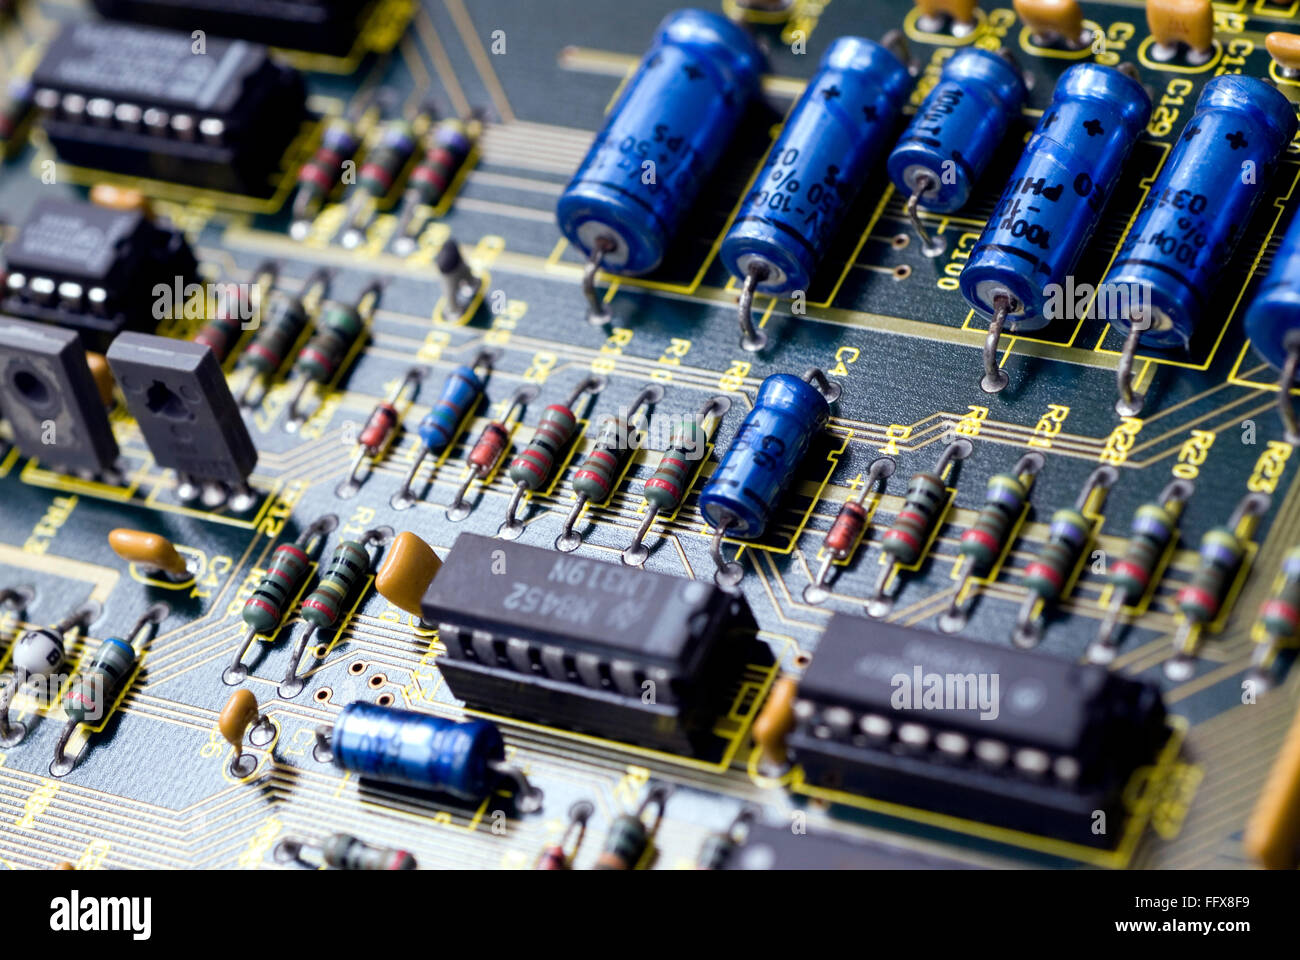 Electronic printed circuit board capacitors resistors IC - Stock Image